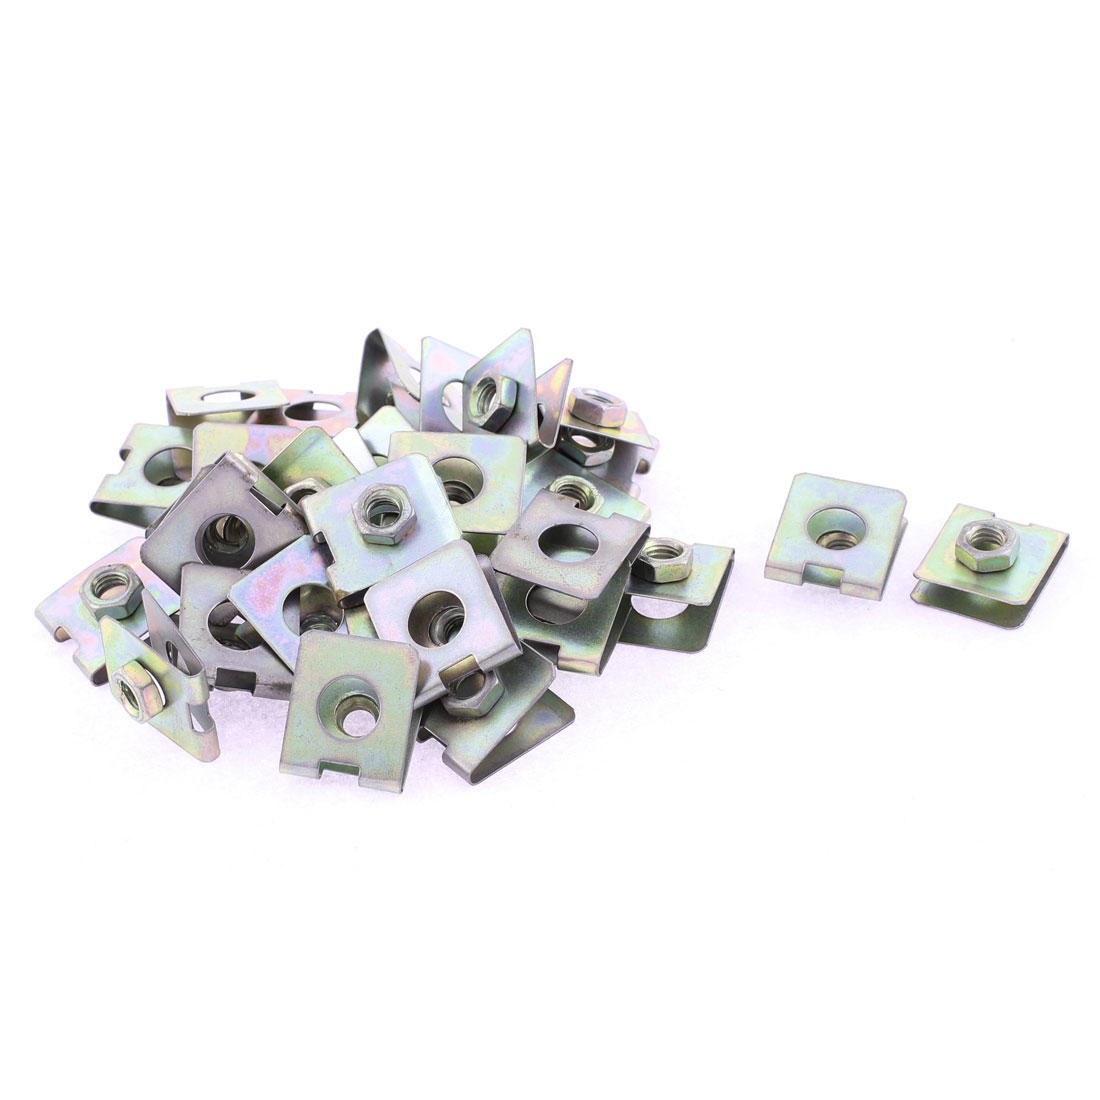 30 Pcs 23mm x 20mm Metal Plate U-Type Clips Speed Nuts for Car Panel Fender